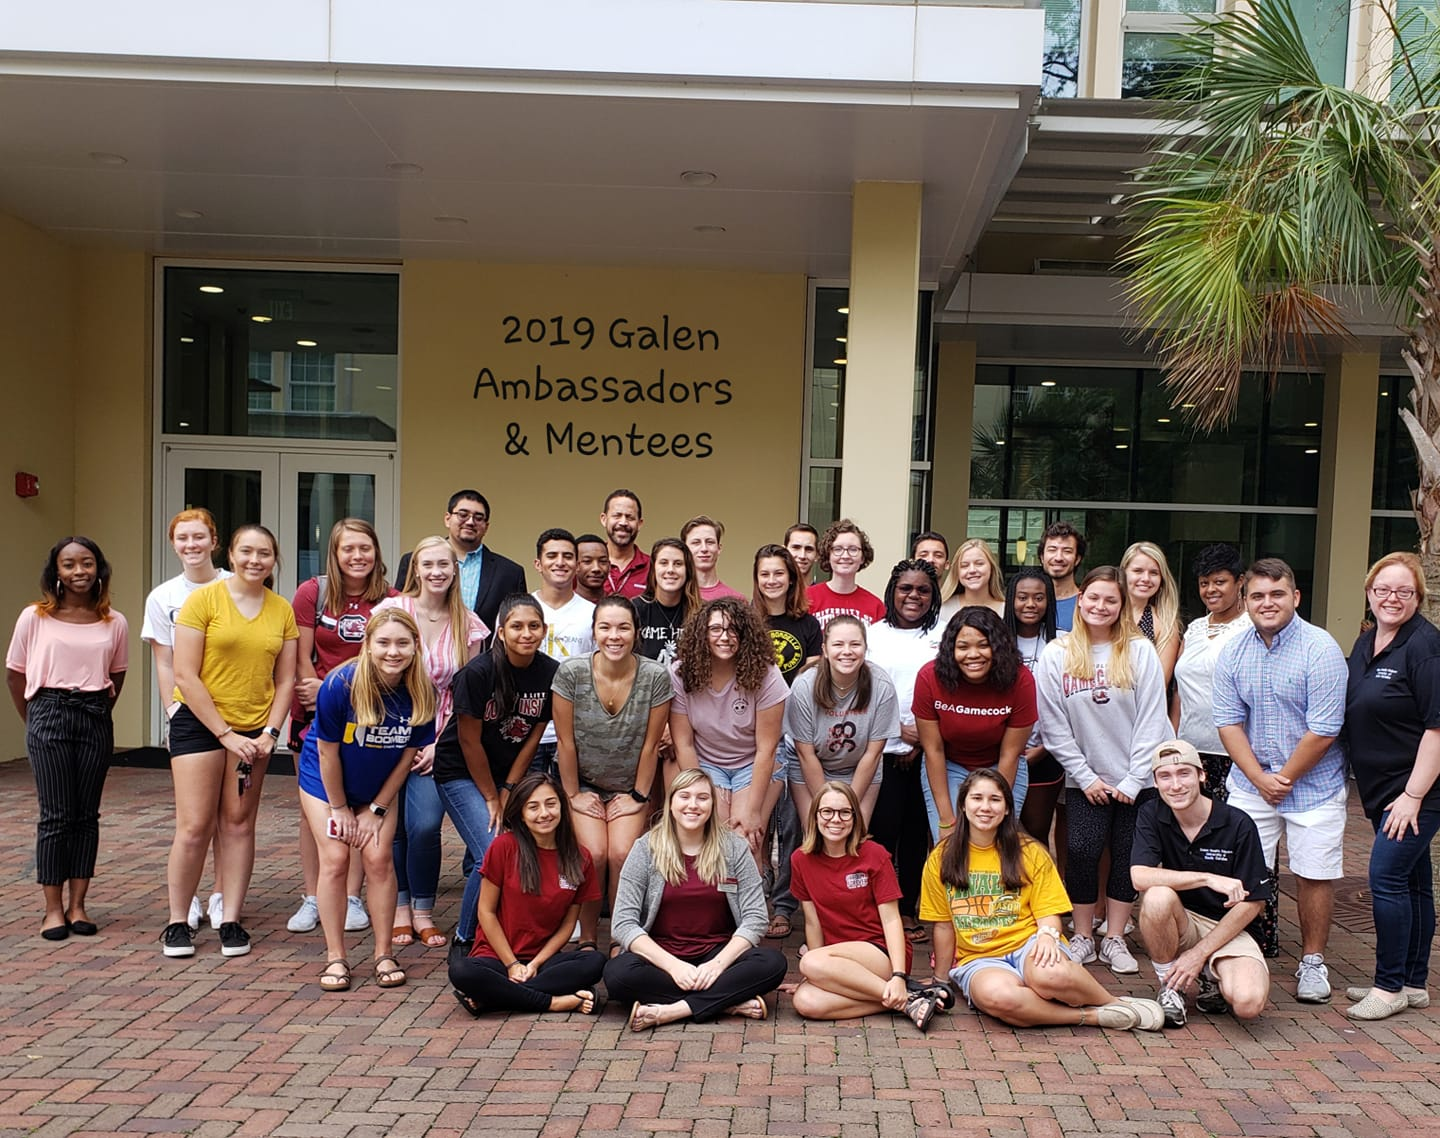 2019-2020 Galen Ambassadors and Mentees group photo